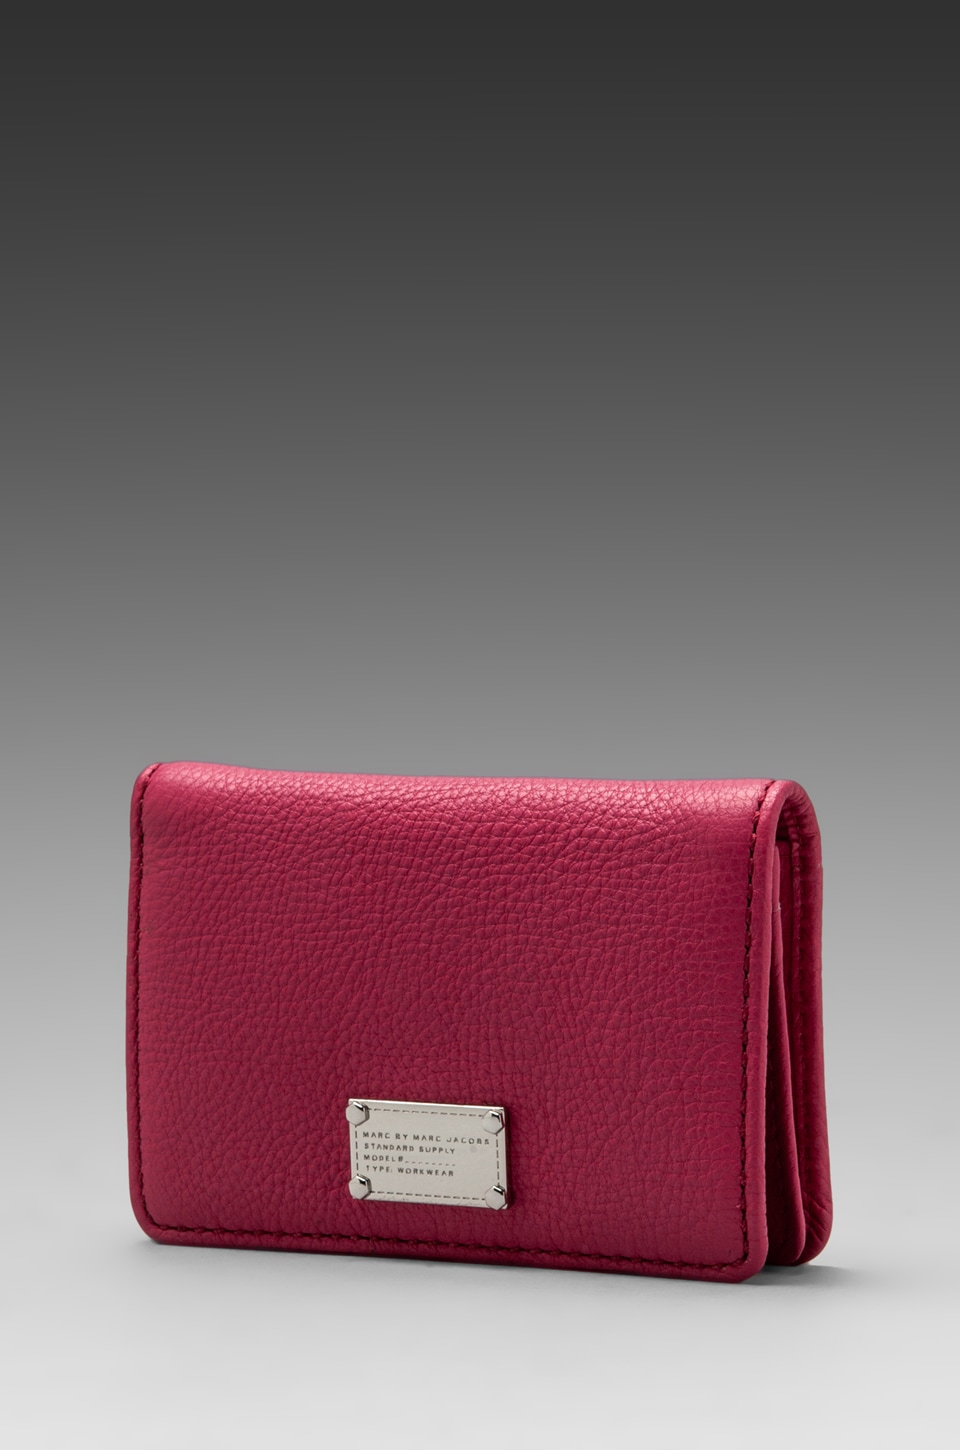 Marc by Marc Jacobs Classic Q Business Card Case in Rose Petal